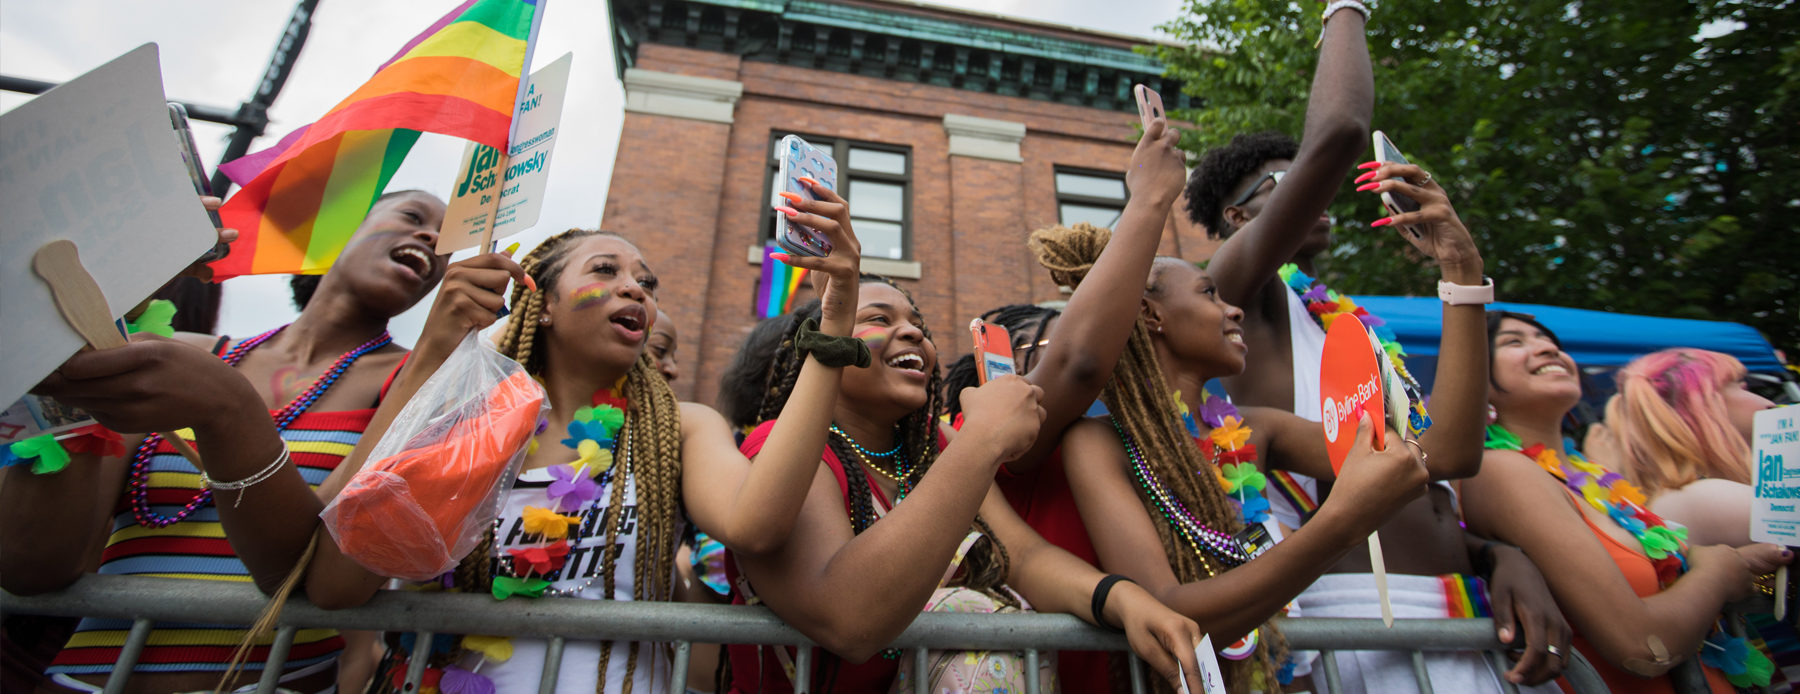 Celebrate Pride month in Chicago